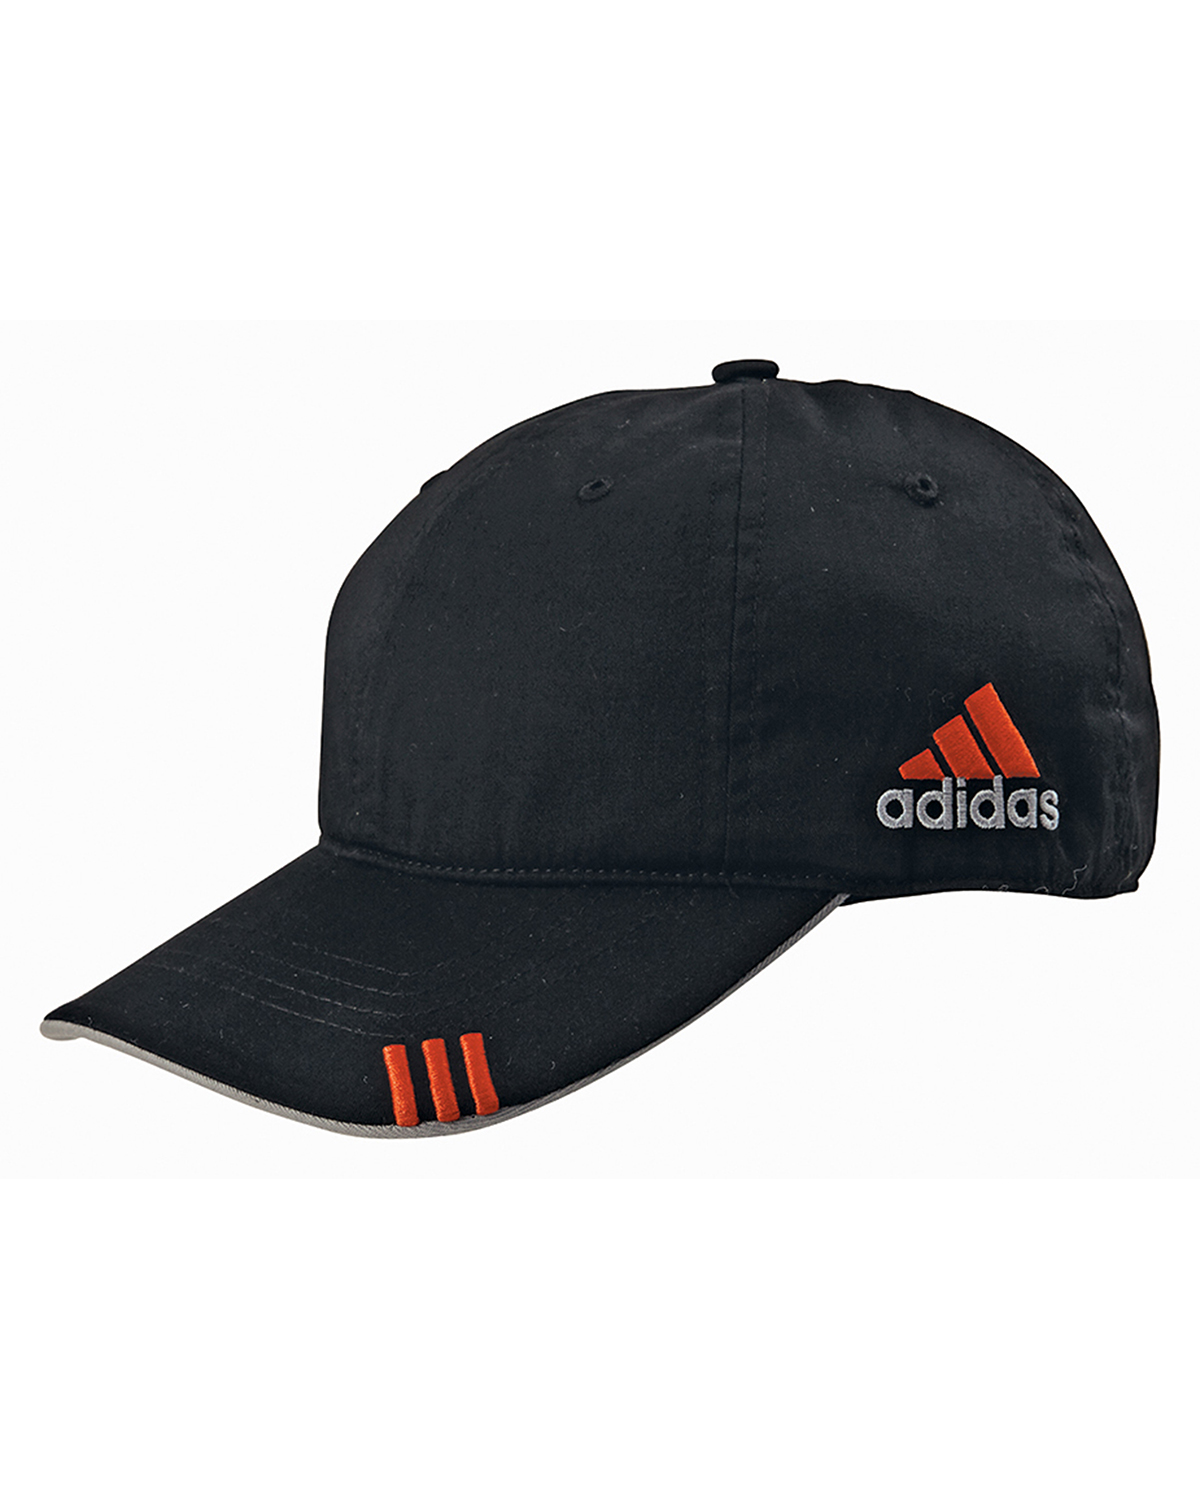 Adidas A626 Unisex Lightweight Cotton Cap at GotApparel